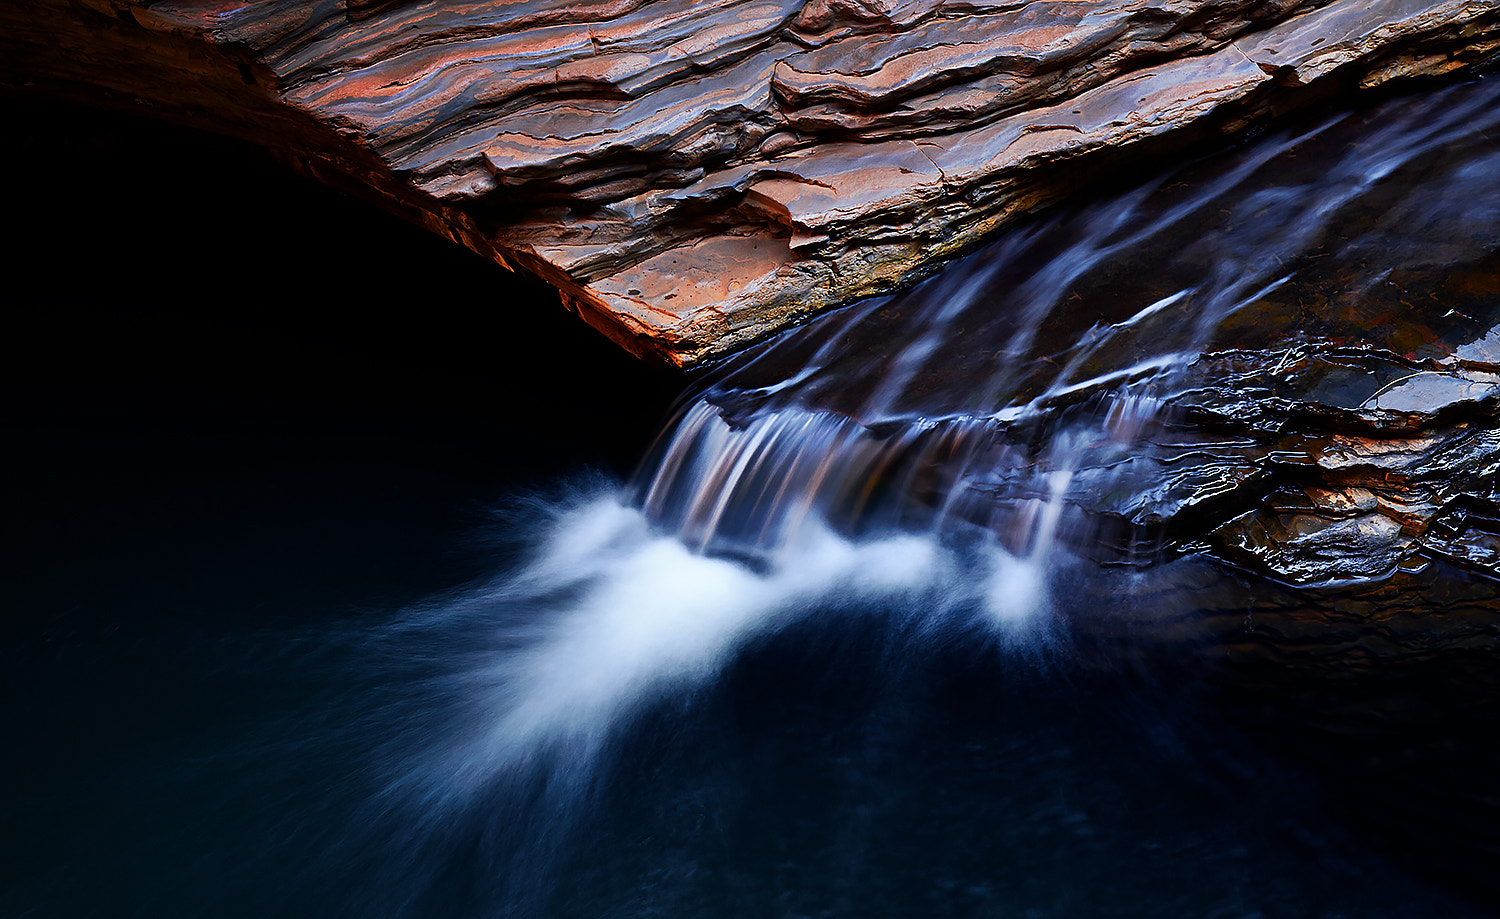 Photograph Kermits Pool by Matt Hutton on 500px